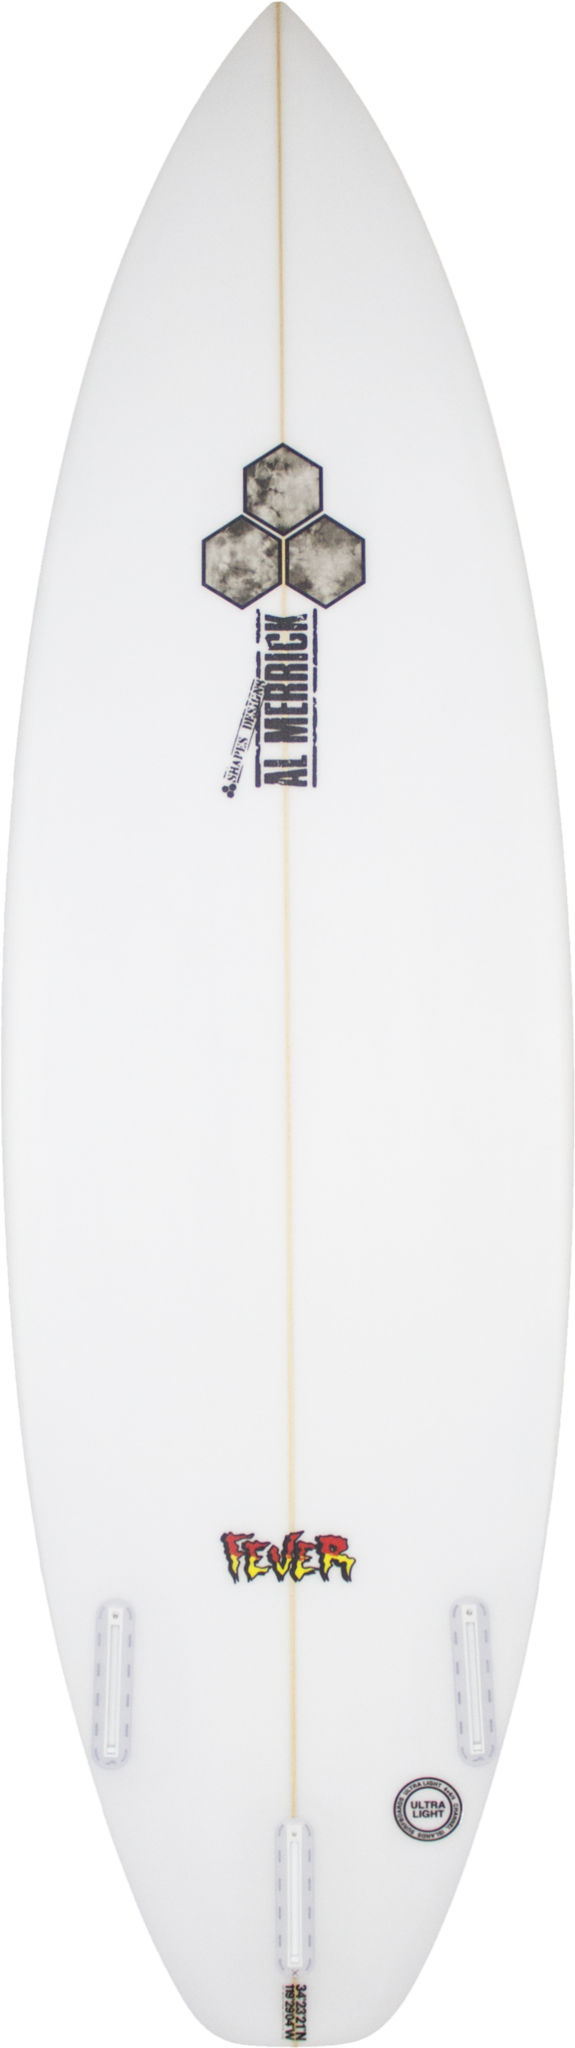 CHANNEL ISLANDS SURFBOARDS 5'11 FEVER FCS2